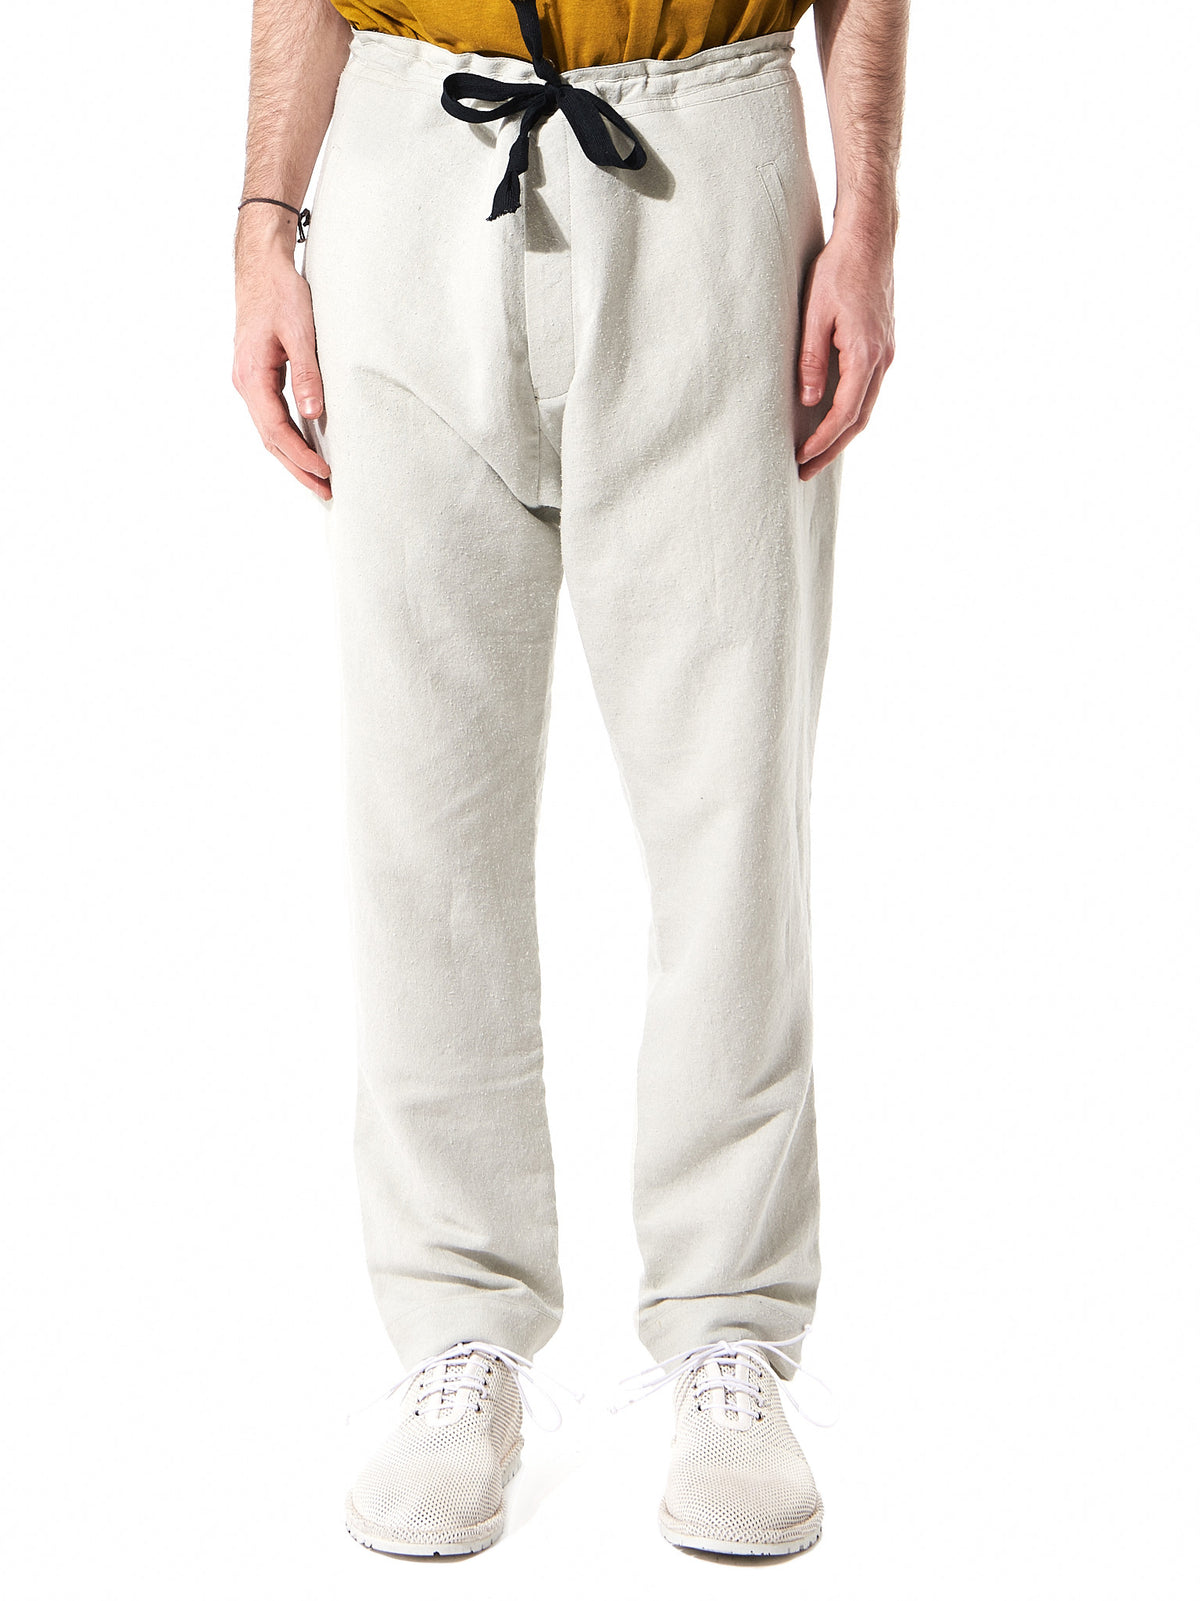 Relaxed-Fit Linen Trousers (TROUSERS#25-ICE) - H. Lorenzo